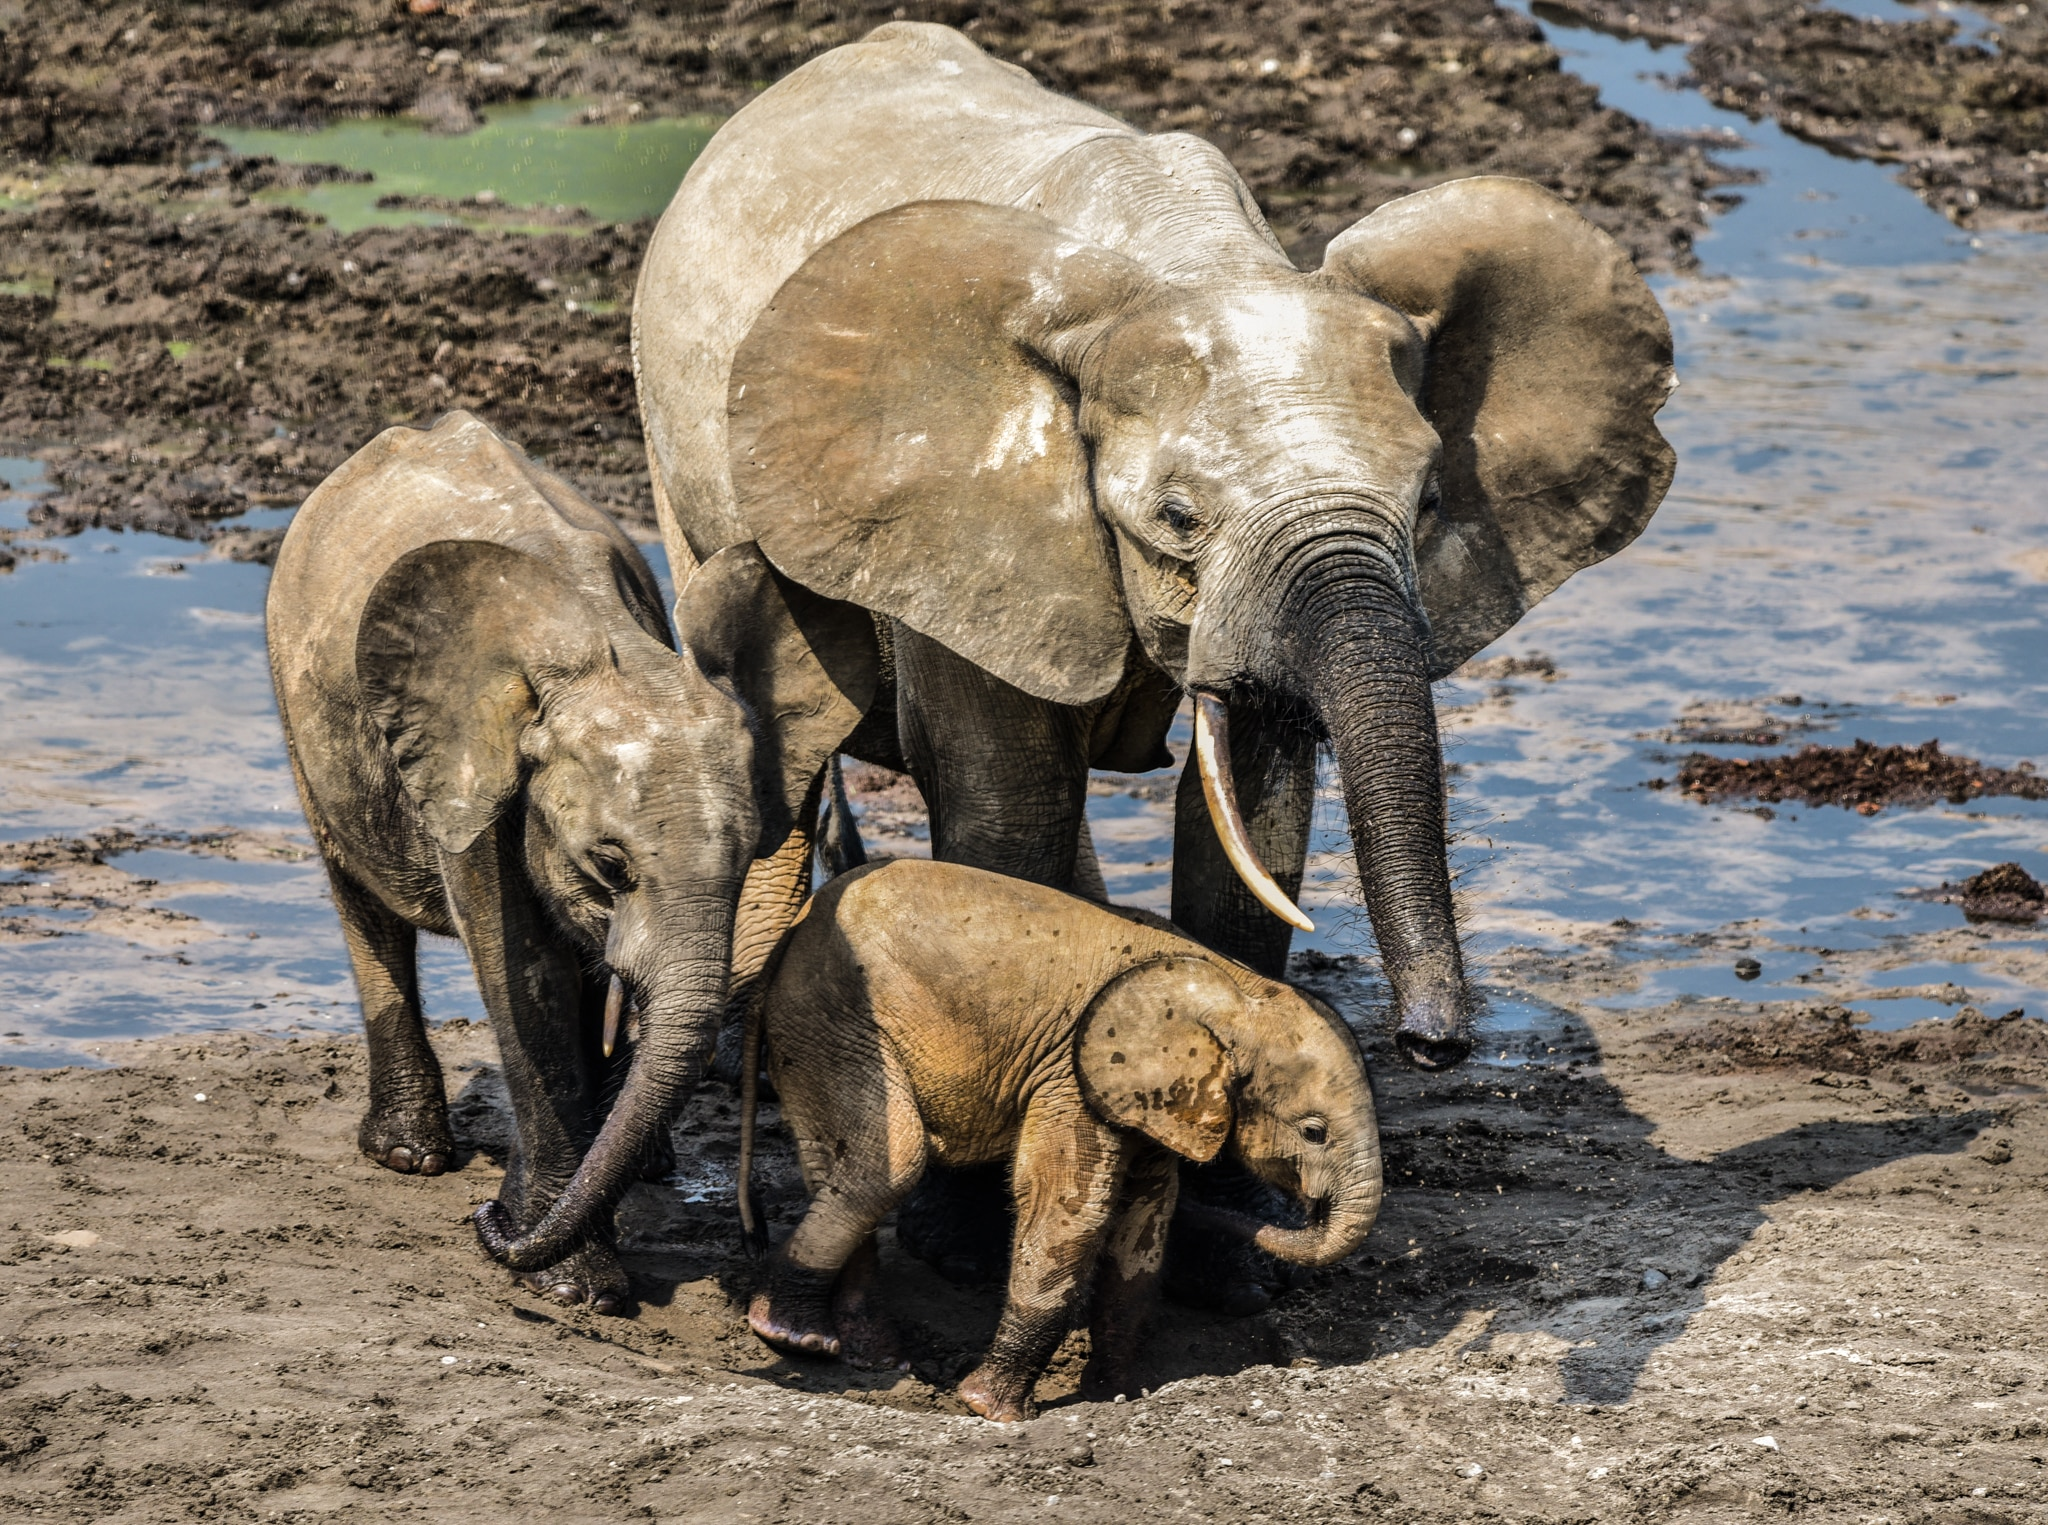 One large and two small elephants at watering hole (© Ana Verahrami/Elephant Listening Project)